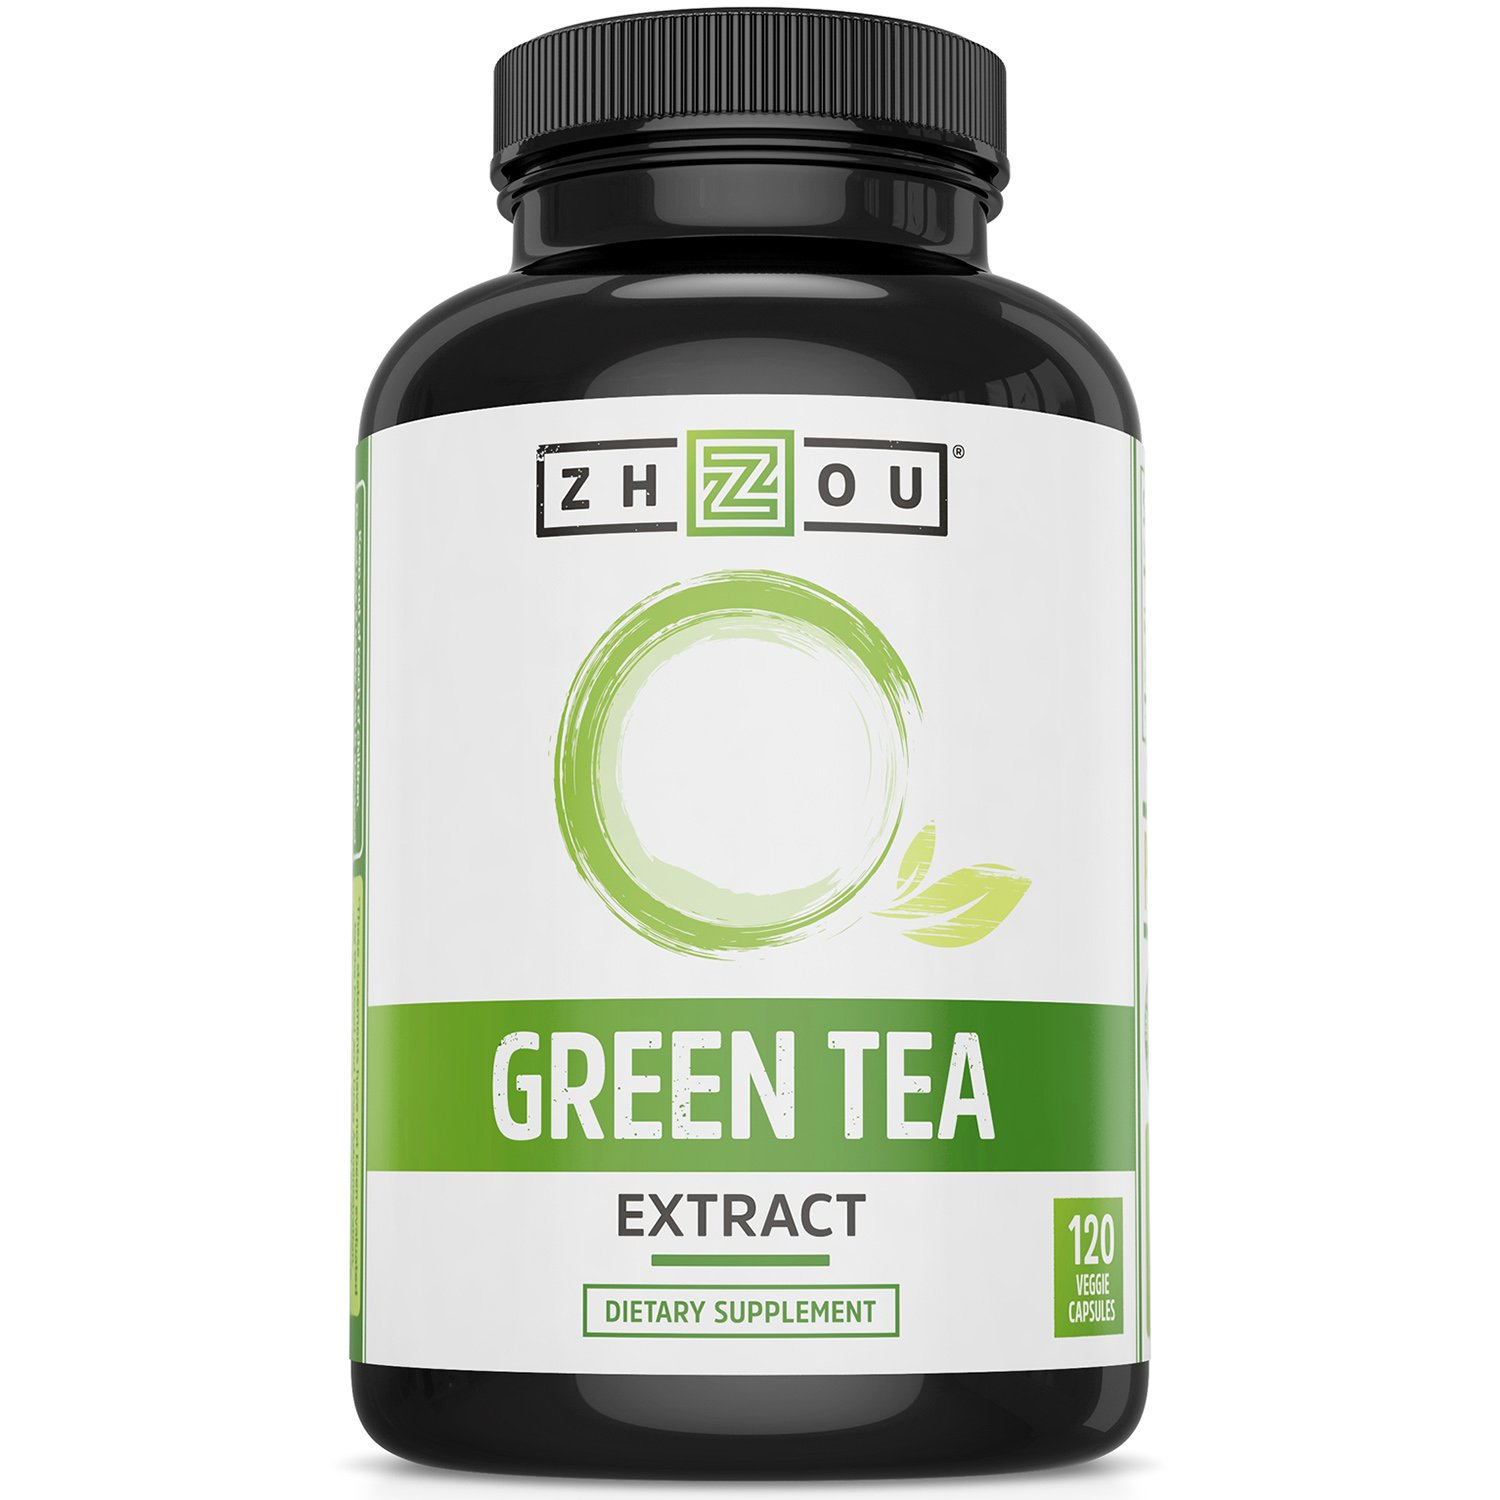 Green Tea Extract Supplement with EGCG for Healthy Weight Support- Metabolism, Energy and Healthy Heart Formula - Gentle Caffeine Source - Antioxidant & Free Radical Scavenger - 120 Veggie Capsules by Zhou Nutrition